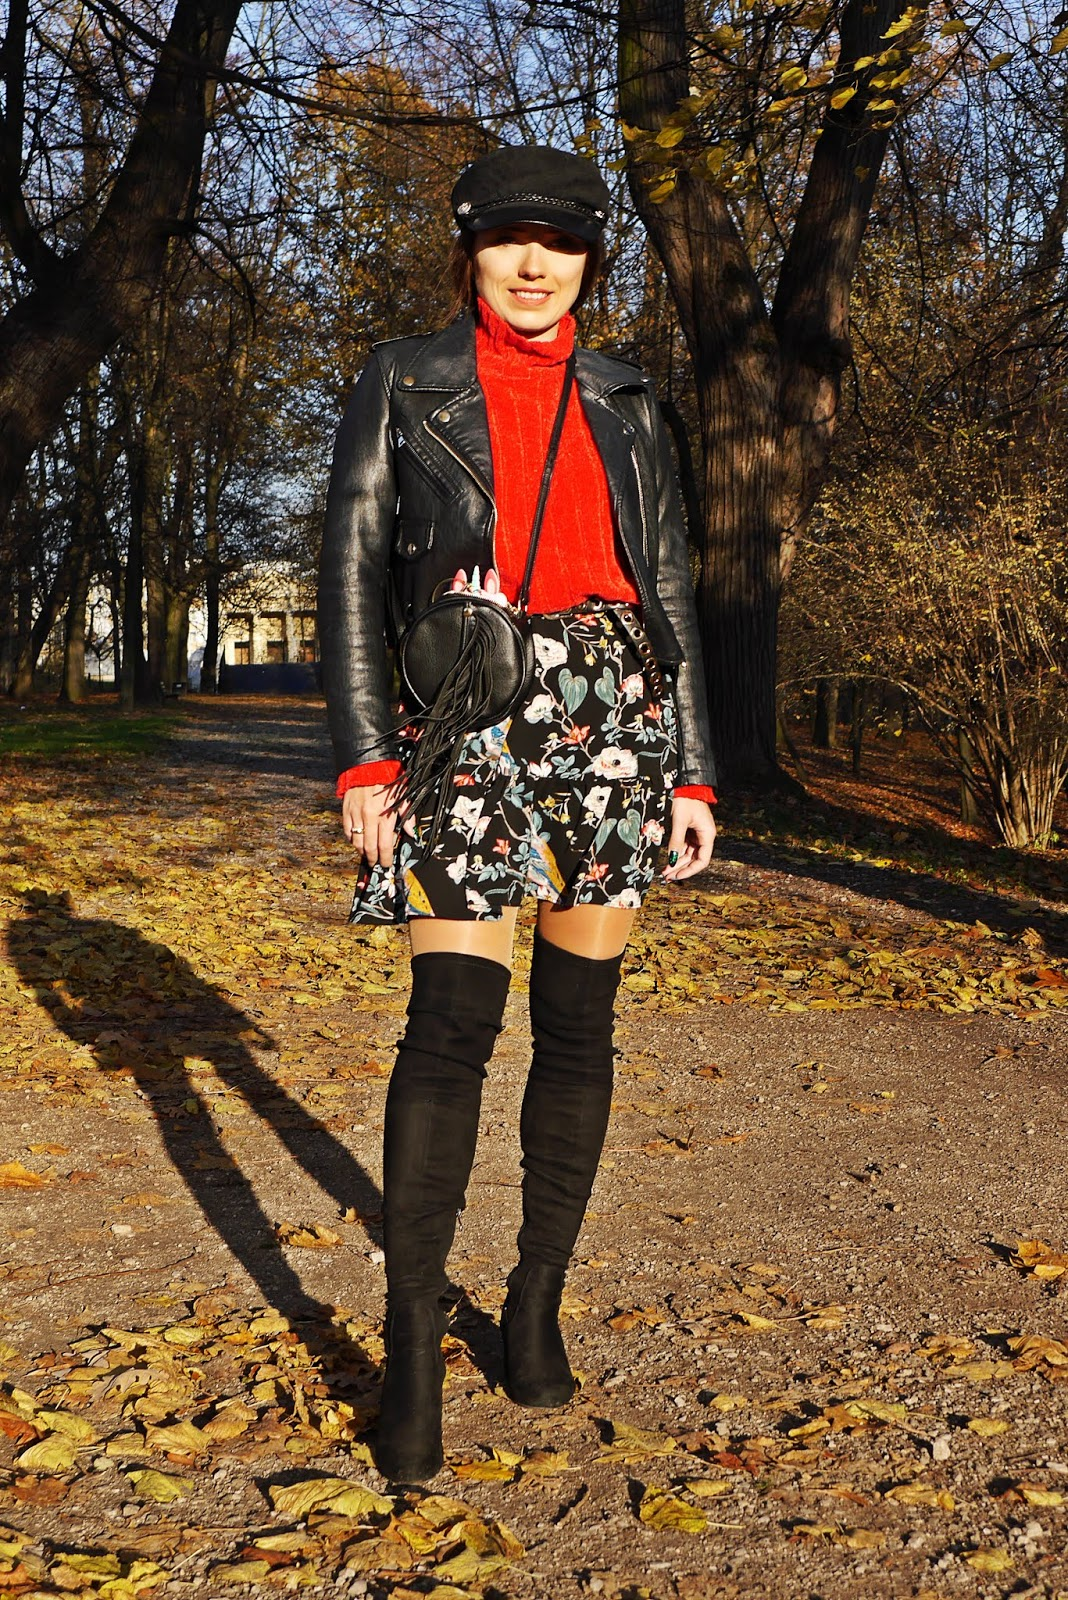 floral dress red sweater biker jacket high knee boots karyn fashion blogger outfit look autumn